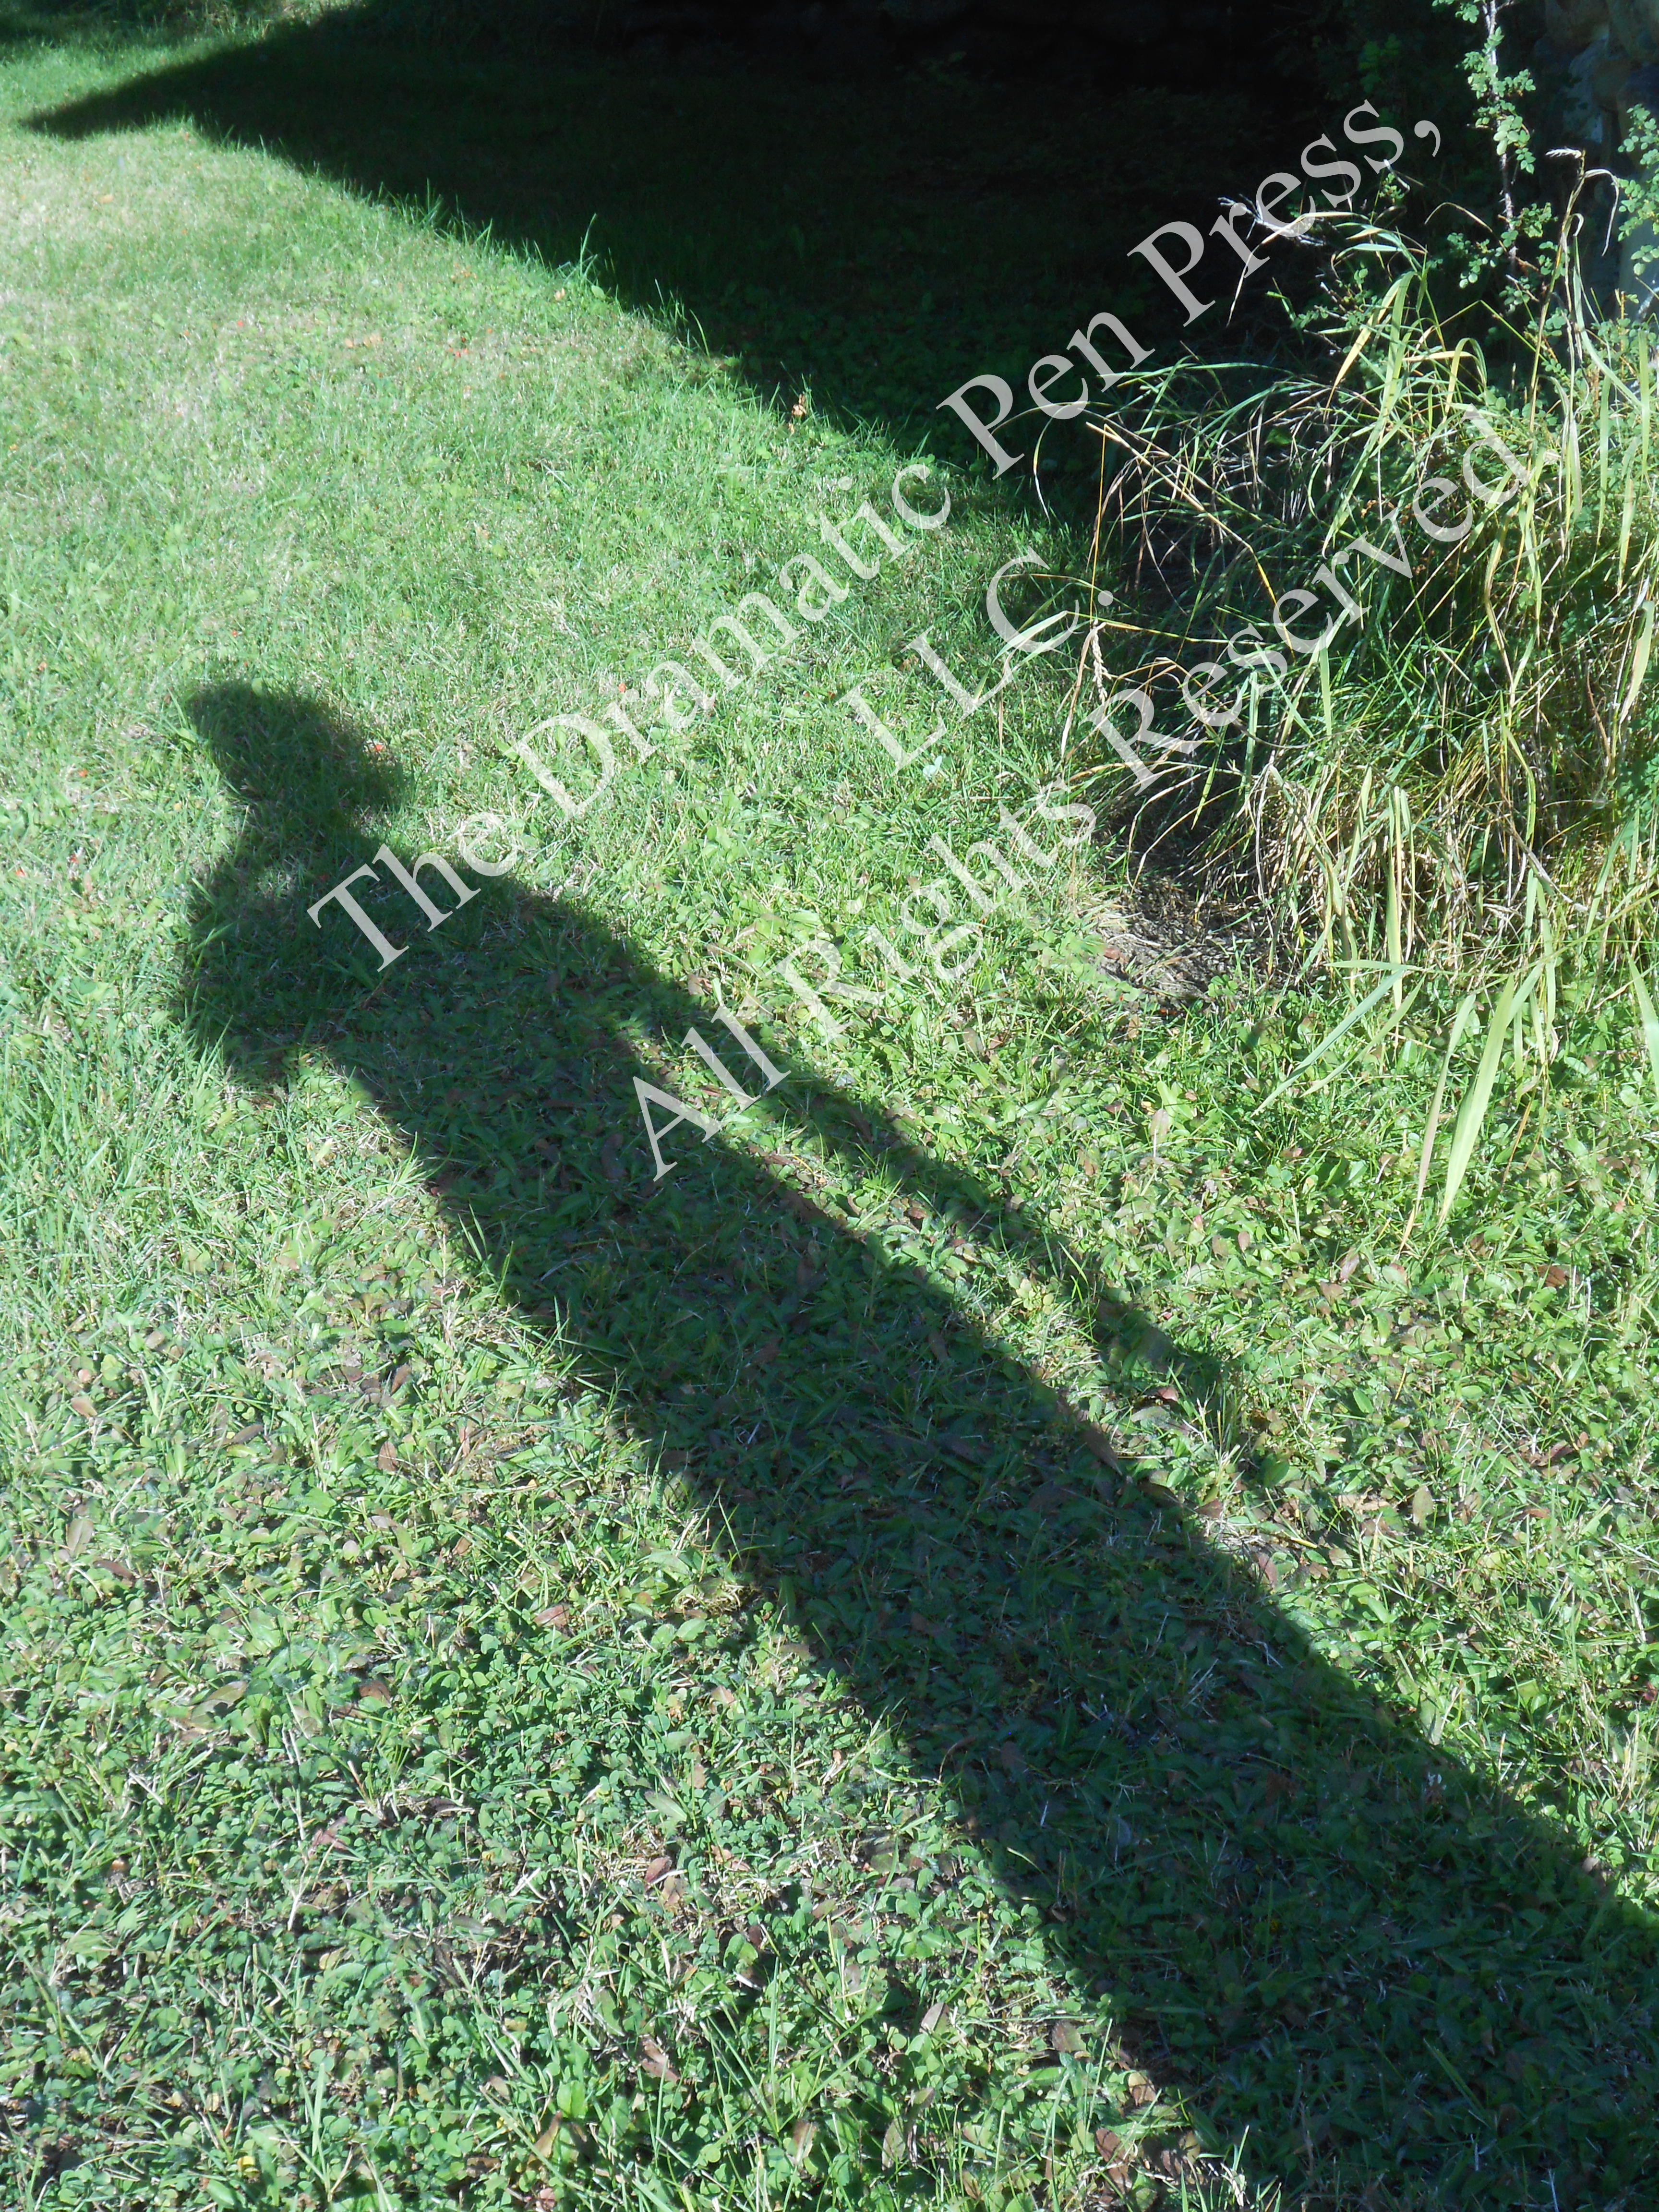 Woman's Shadow on Grass